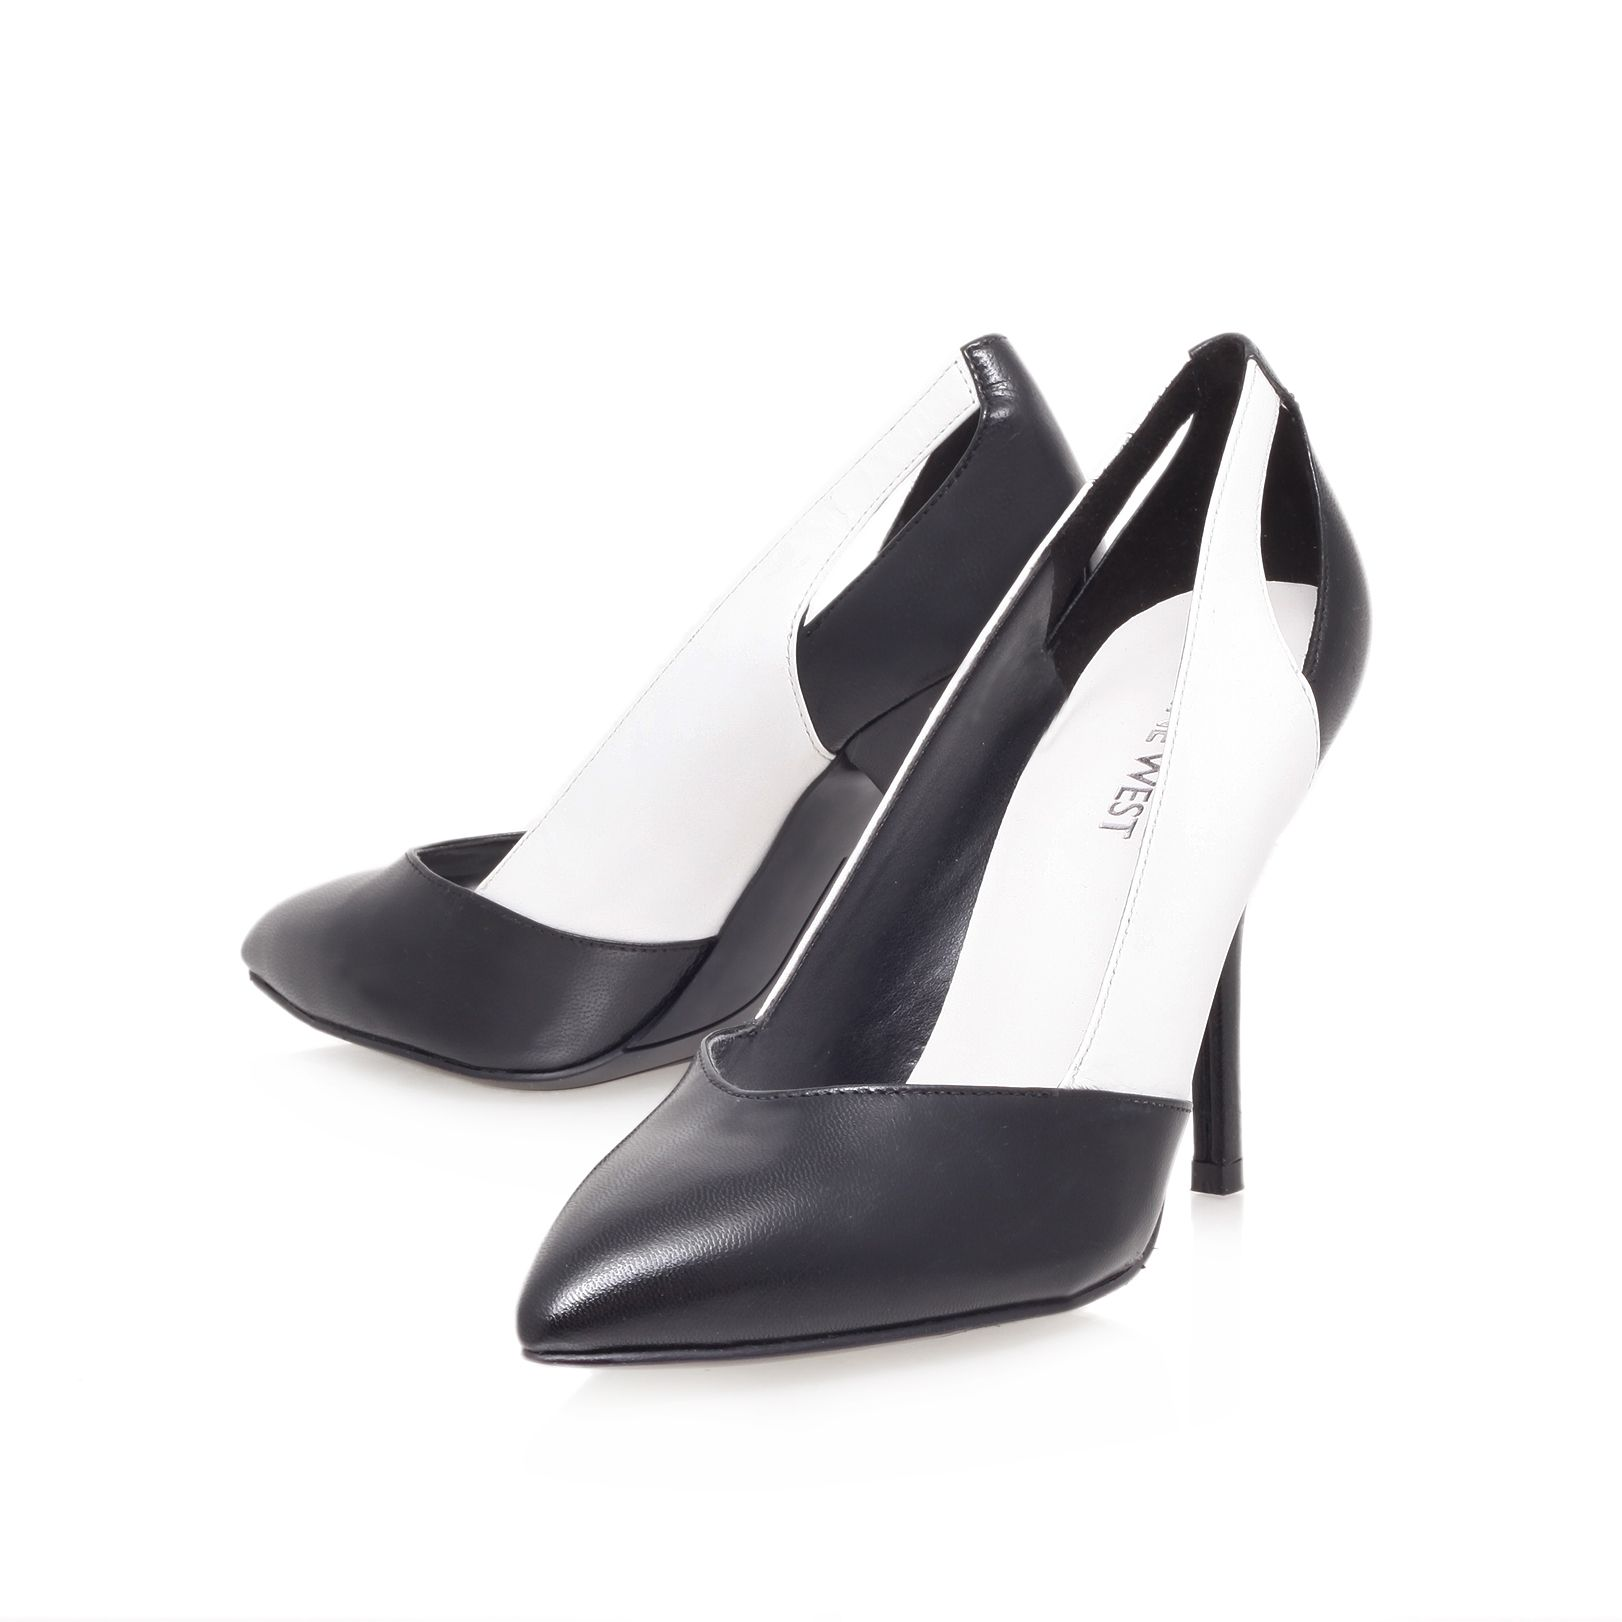 Juana high heel court shoes